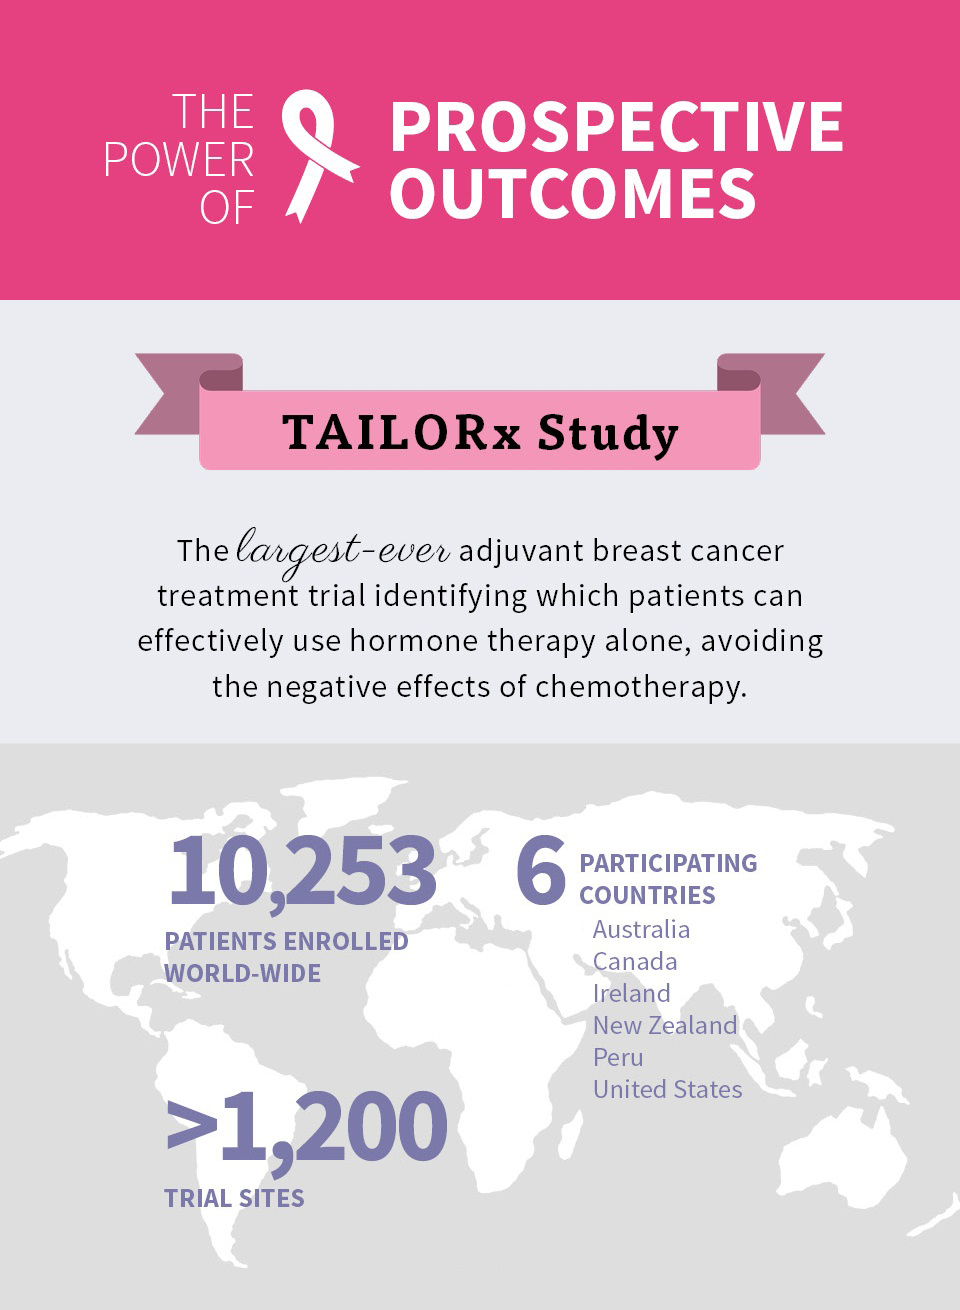 TAILORx: The Power of Prospective Outcomes Infographic